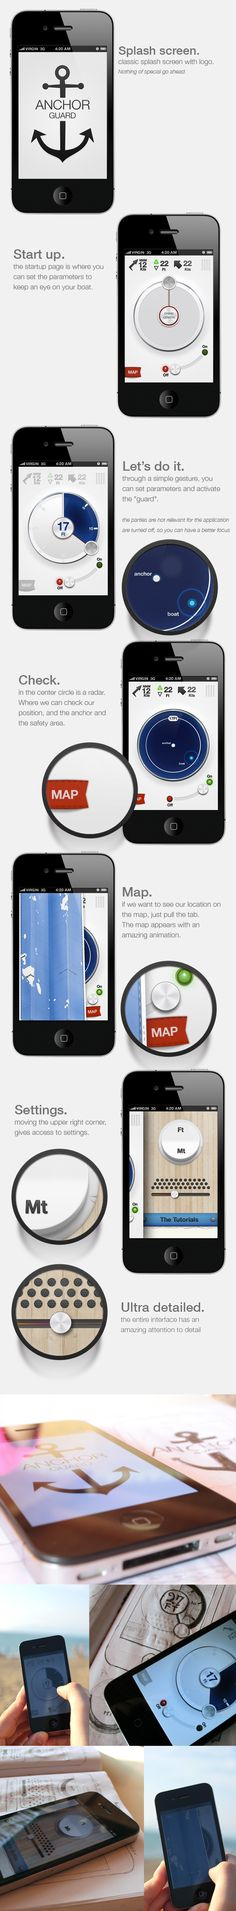 Anchor Guard (for iOS) by Marco Nenzi, via Behance